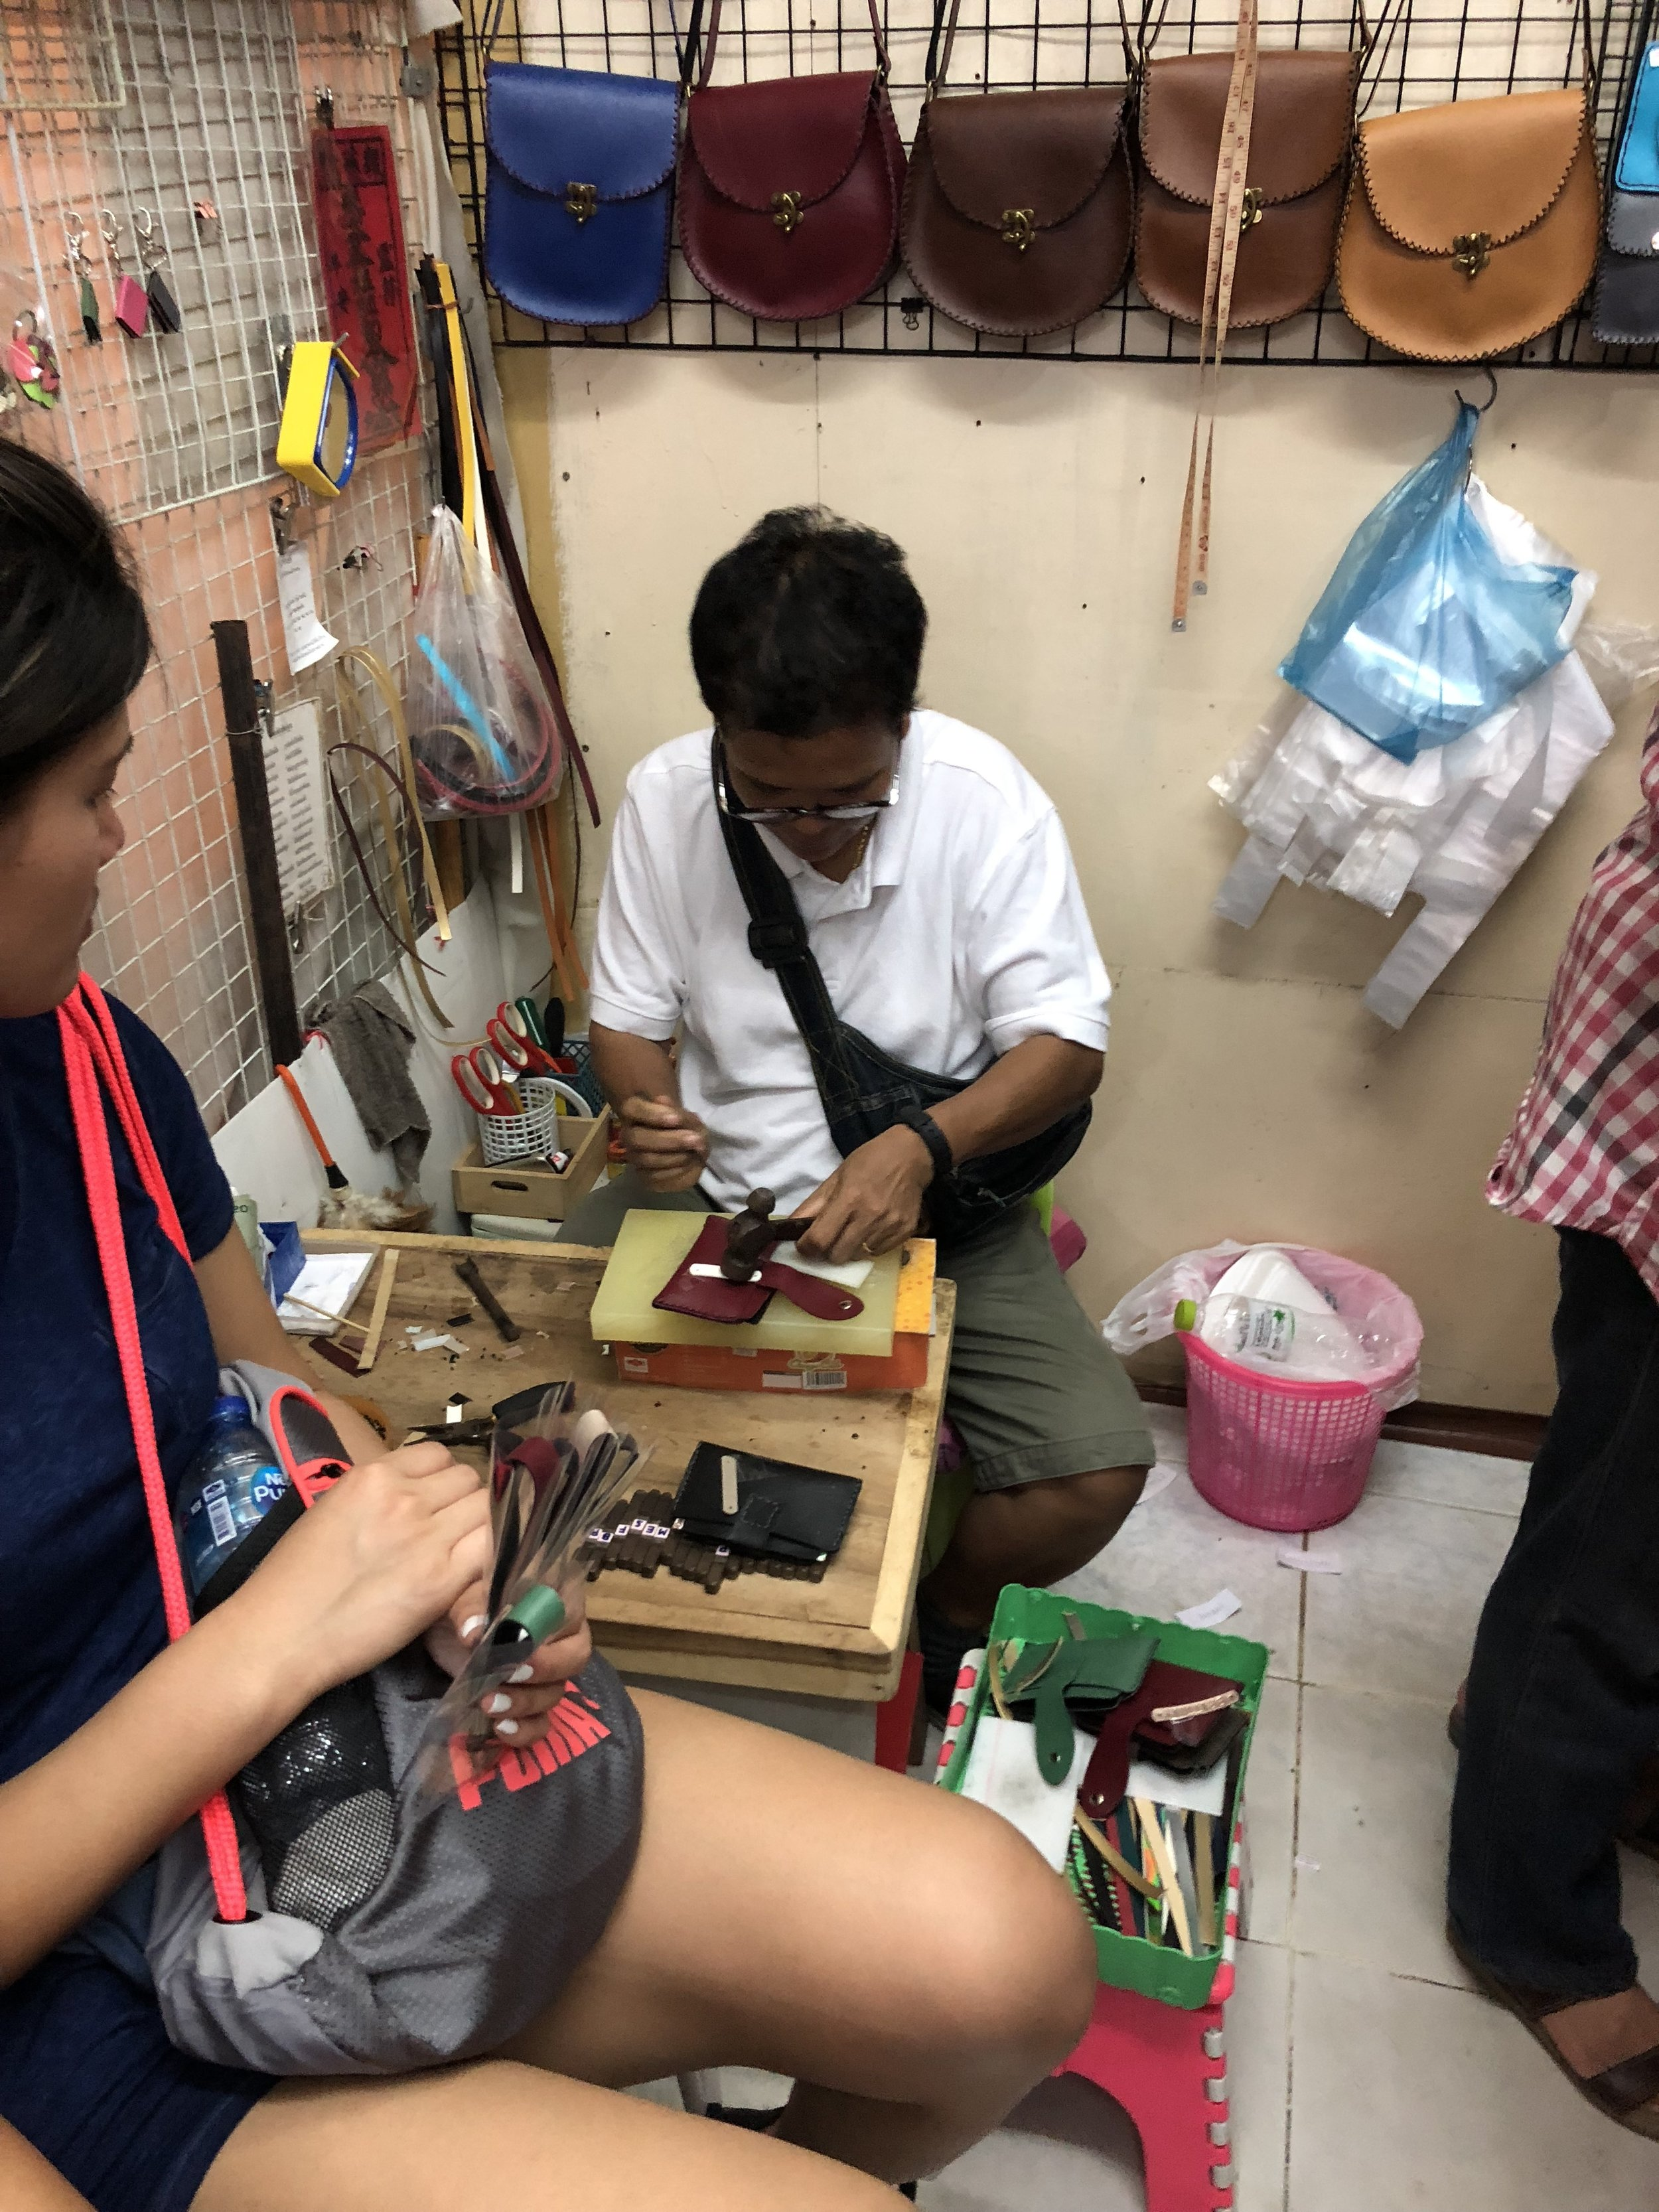 Getting custom wallets at Chatuchak Weekend Market